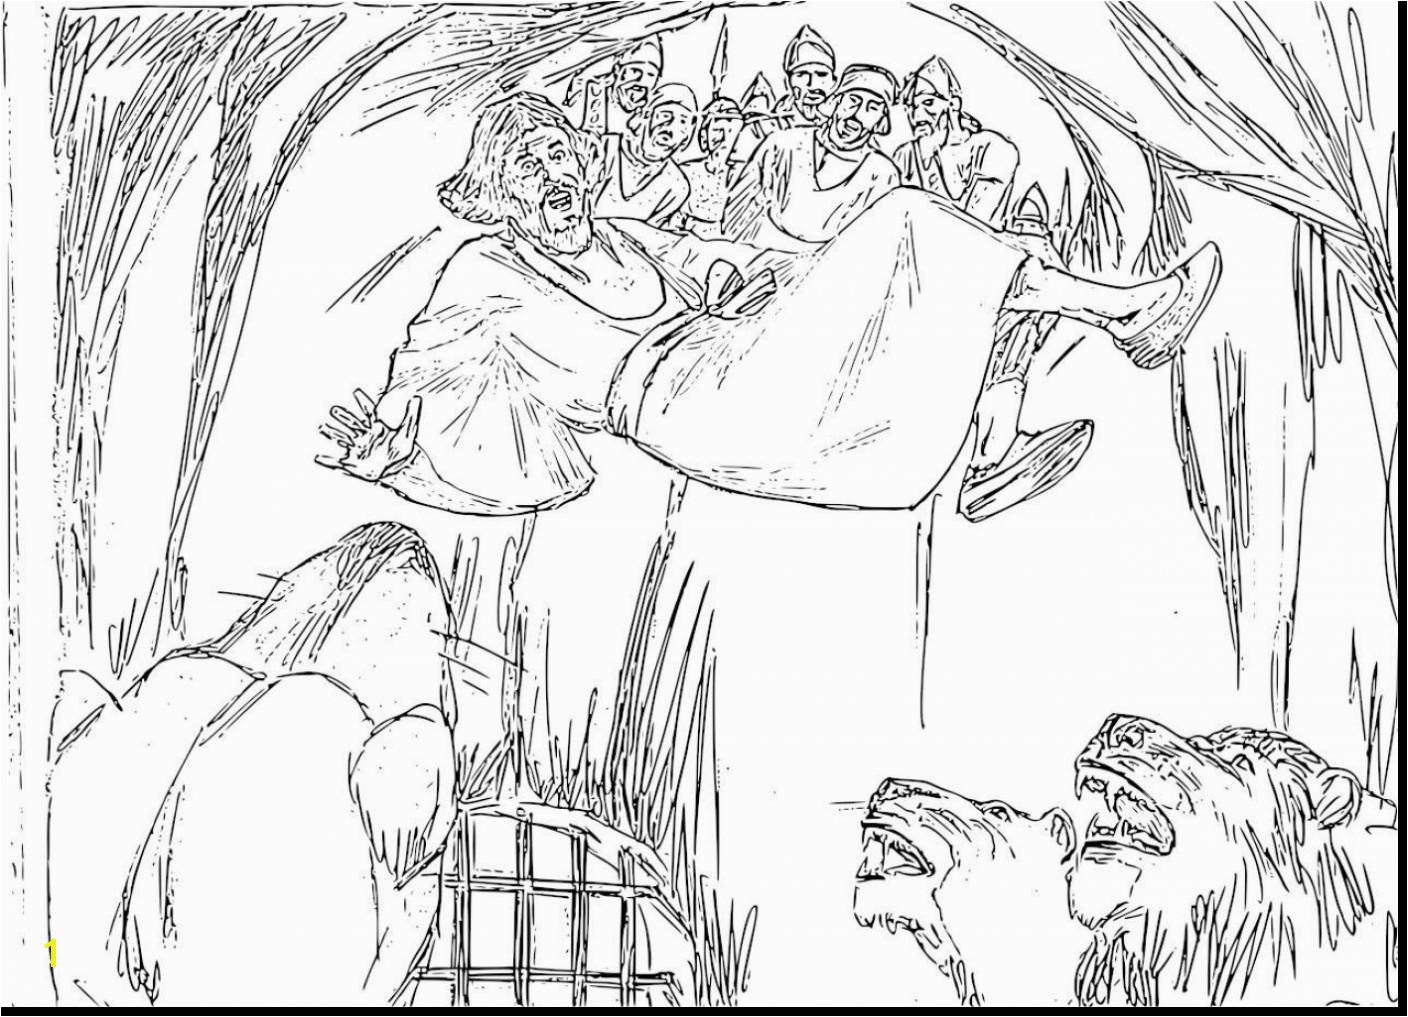 Coloring Page Of Daniel In the Lion S Den Daniel and the Lions Den Coloring Page Daniel and the Lions Den